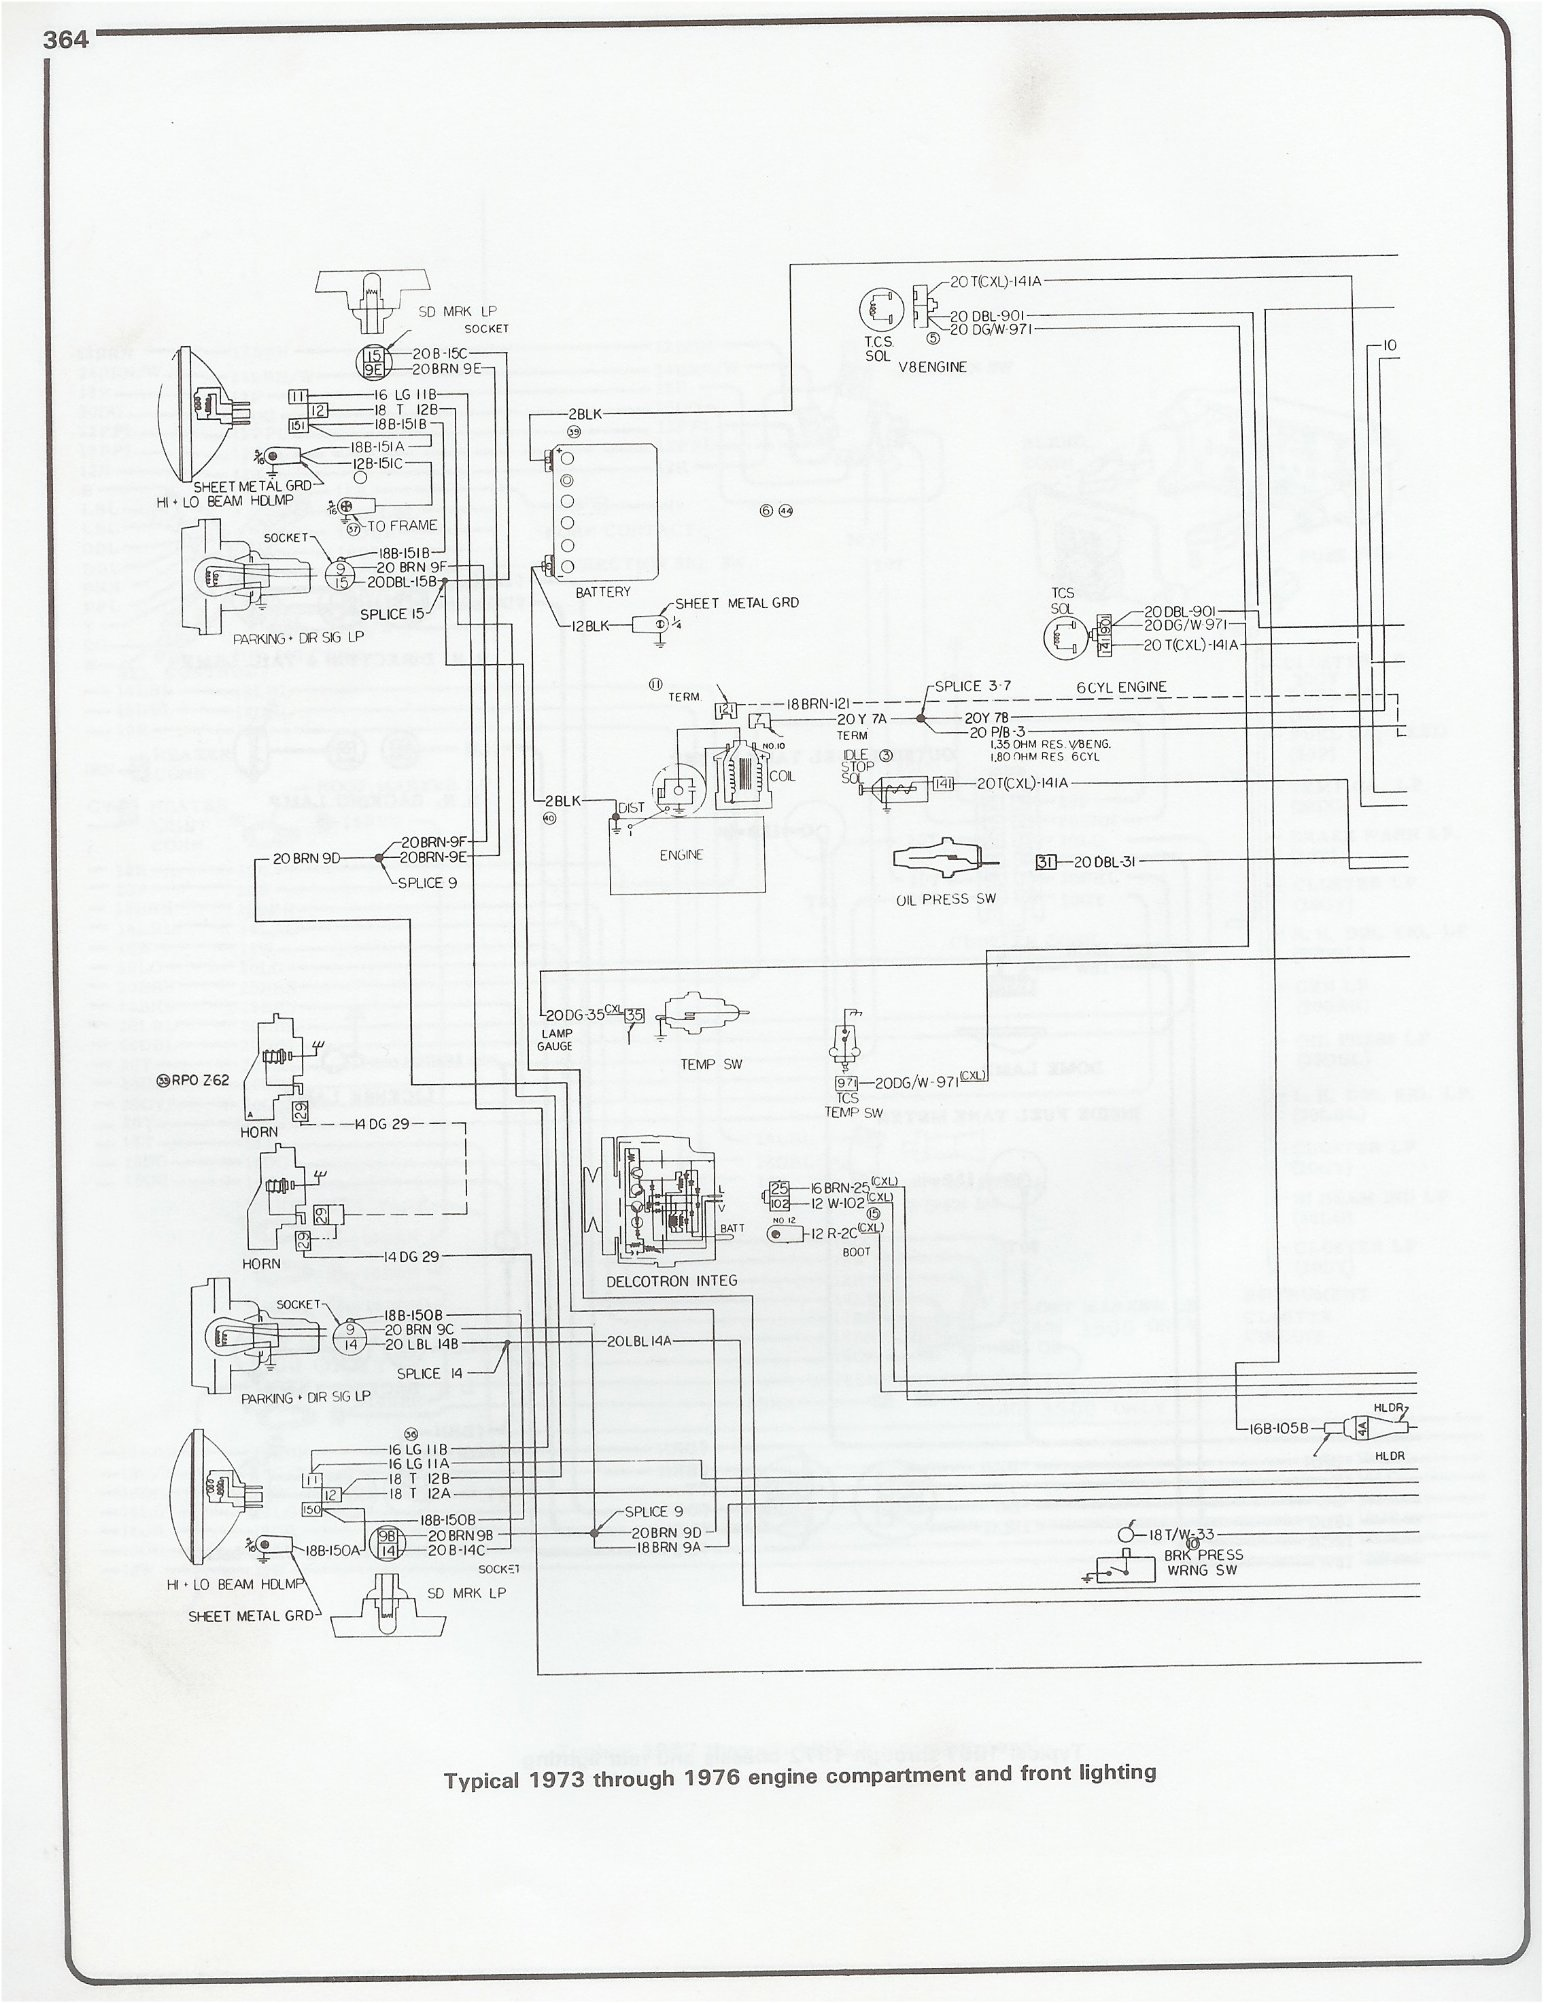 73 76_eng_frt_light complete 73 87 wiring diagrams 1989 Chevy 1500 Wiring Diagram at edmiracle.co